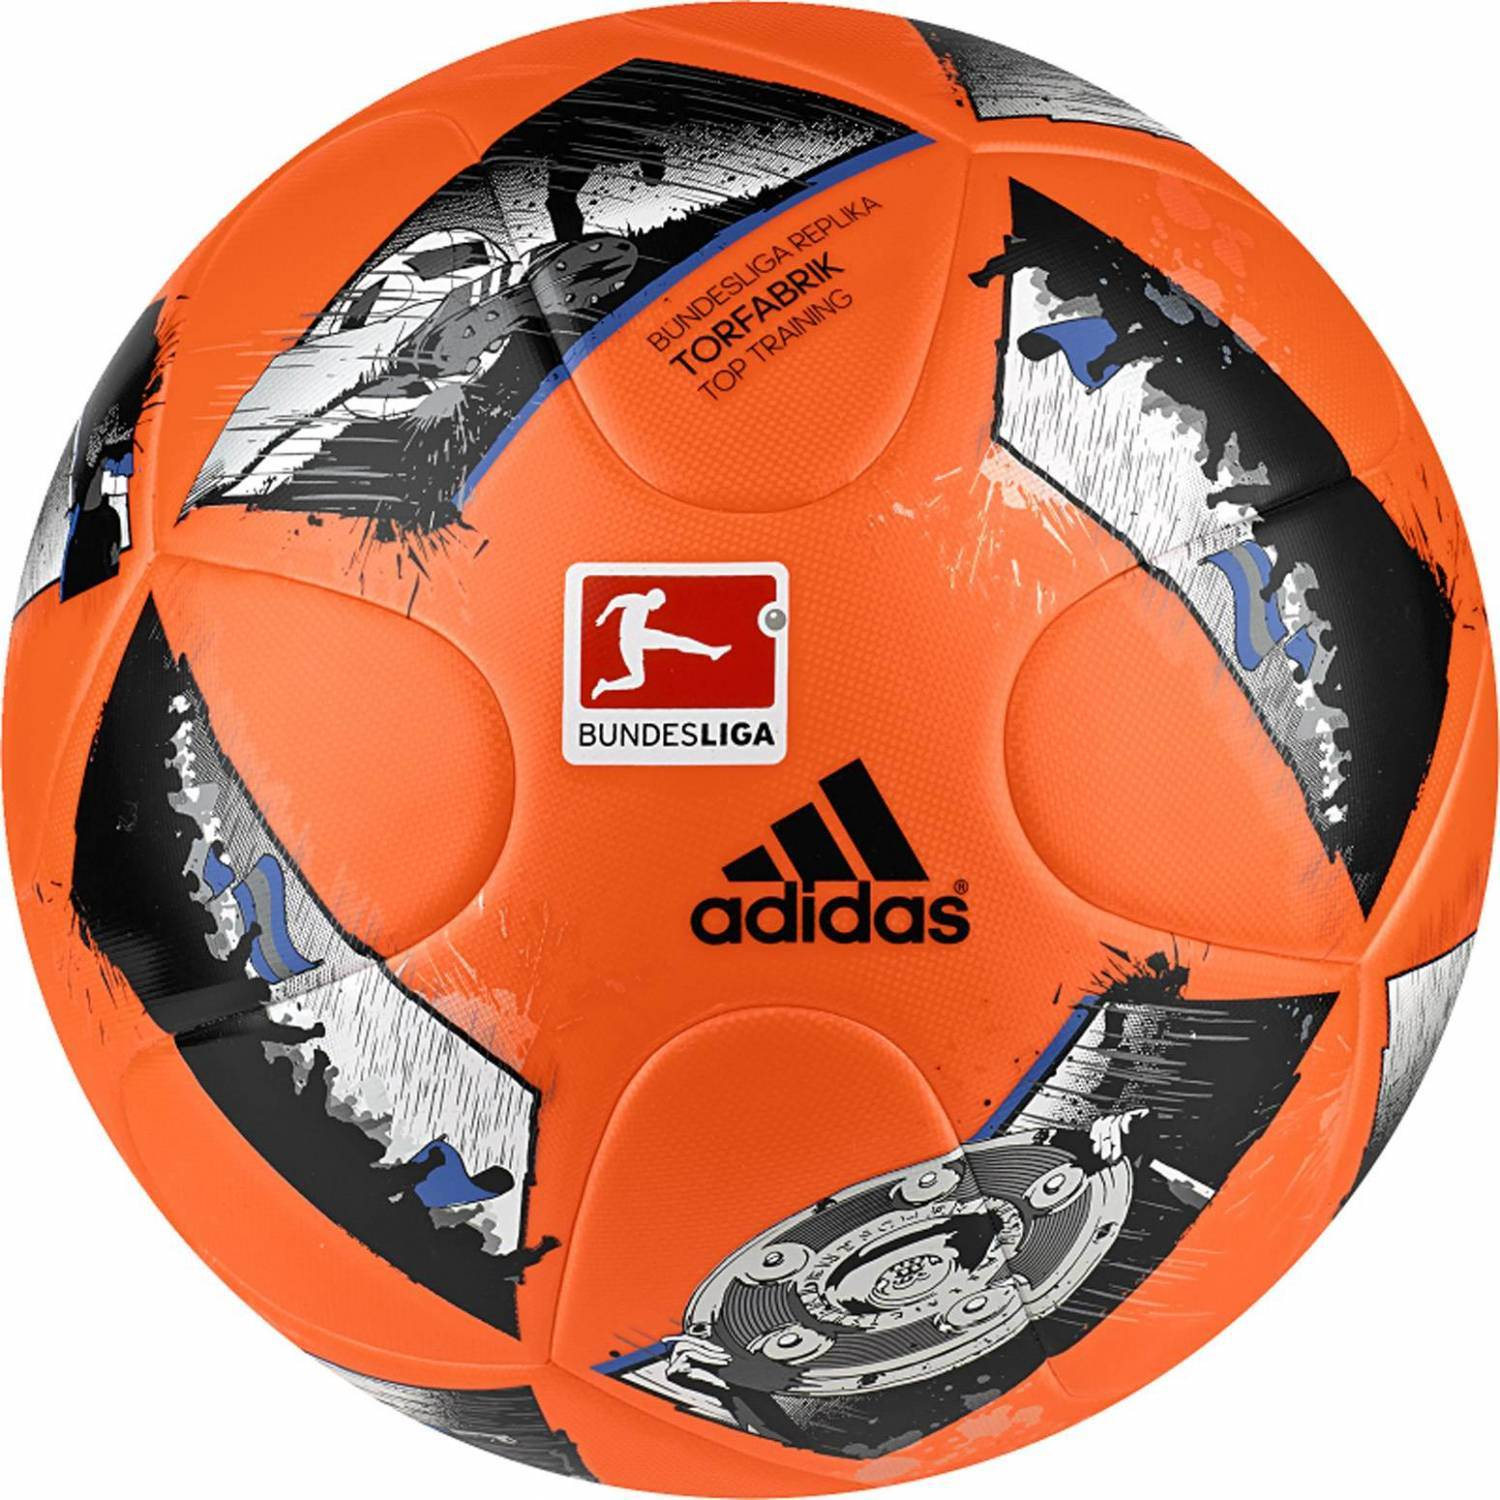 adidas DFL Torfabrik 2016 Top Training Trainingsball (Größe: 5, solar orange/blue/black)